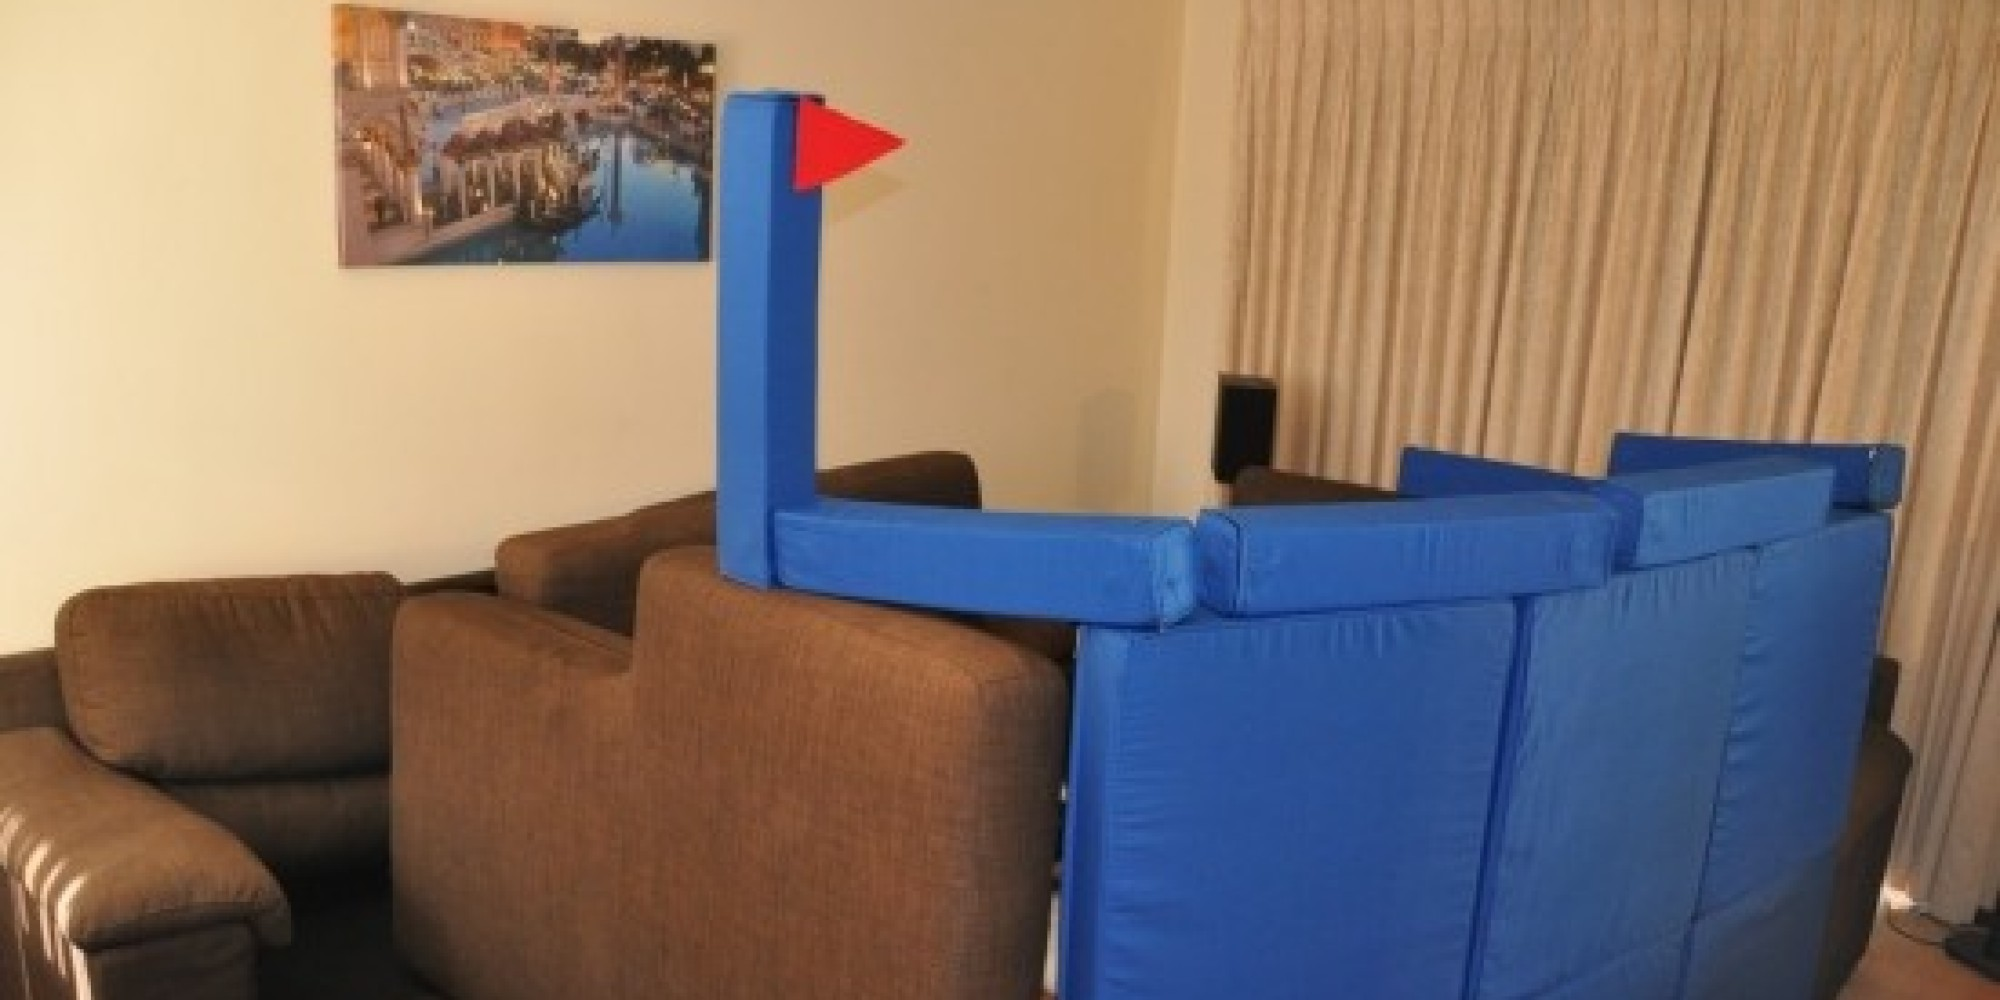 Squishy Forts Magnetic Cushions Let You Build The Ultimate Pillow Fortress